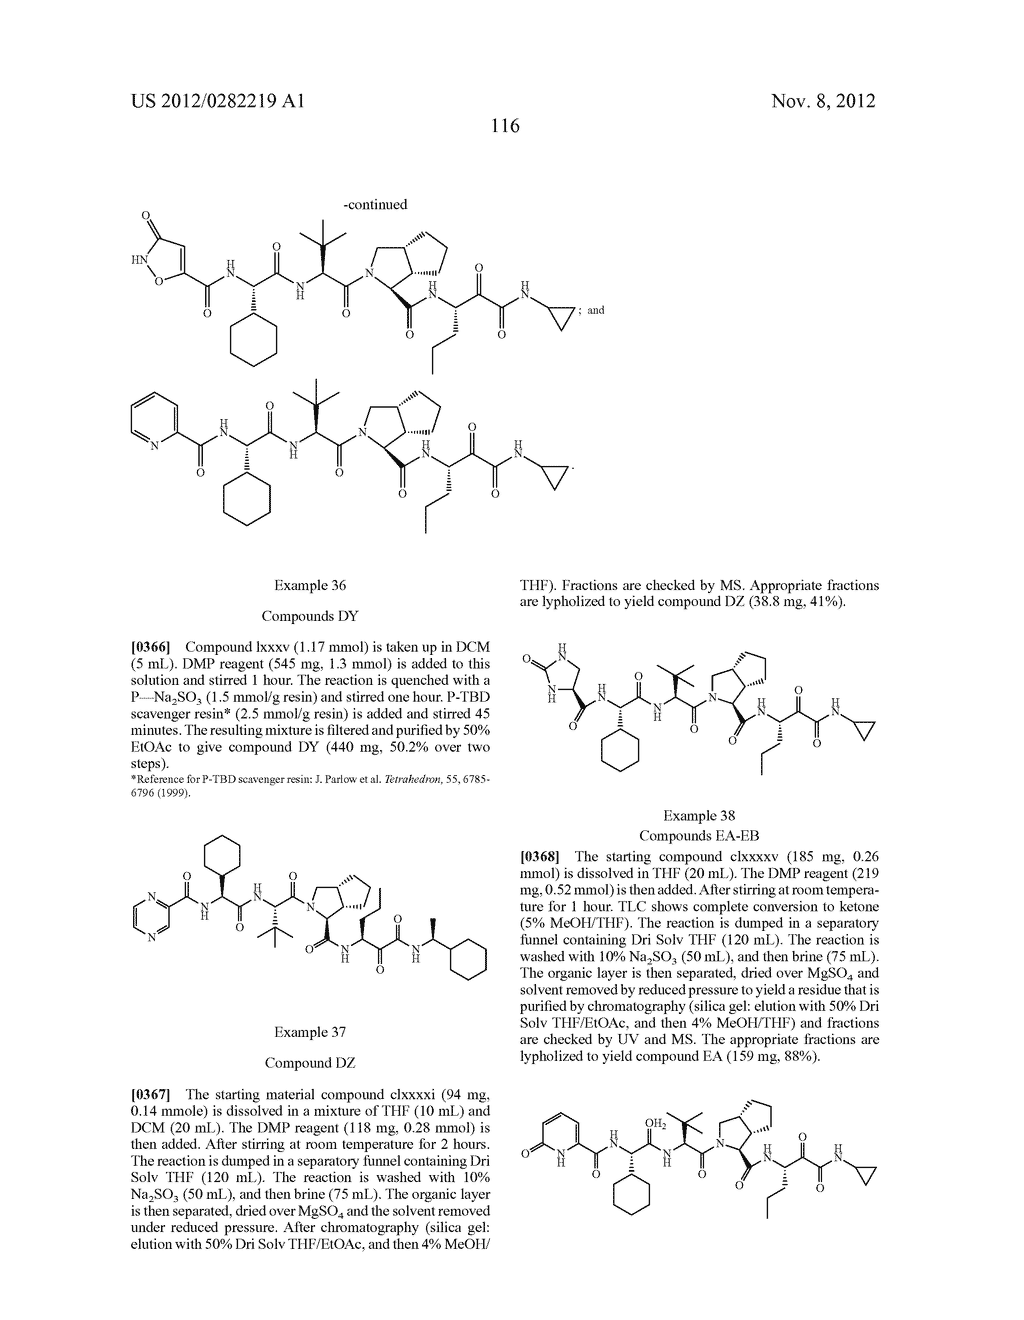 PEPTIDOMIMETIC PROTEASE INHIBITORS - diagram, schematic, and image 131